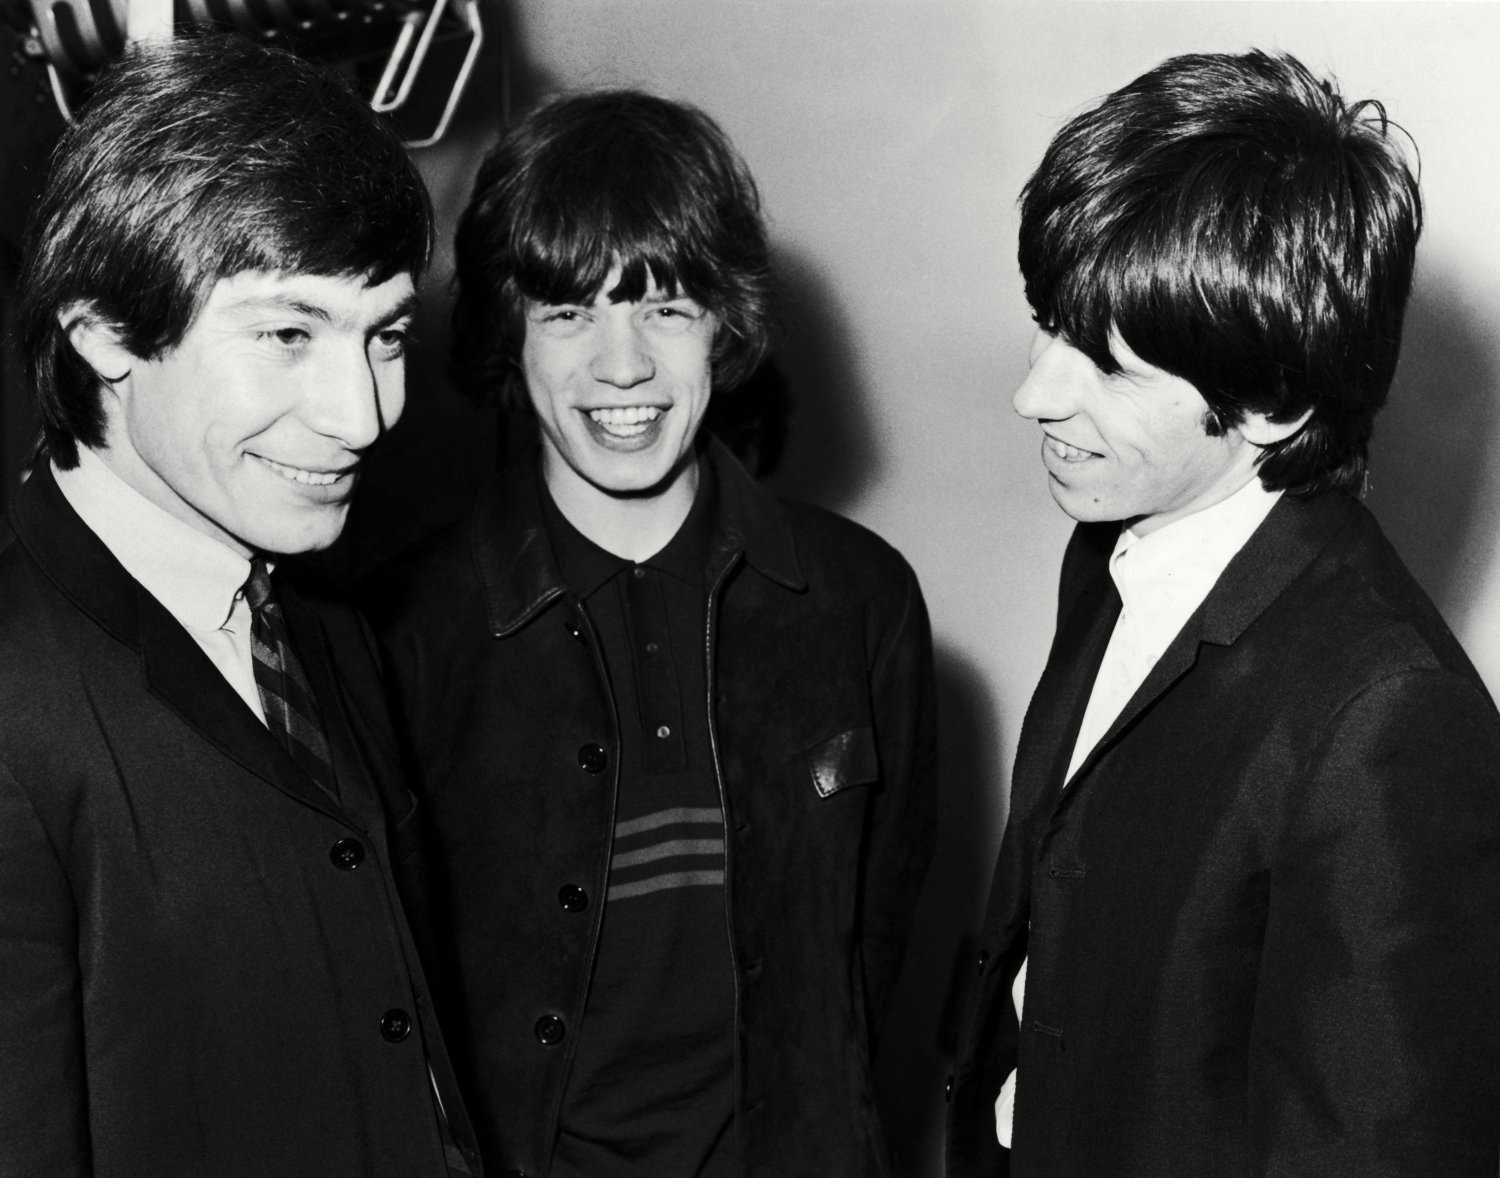 CHARLIE WATTS MICK JAGGER KEITH RICHARDS THE ROLLING STONES 8X10 PHOTO (OP-024)